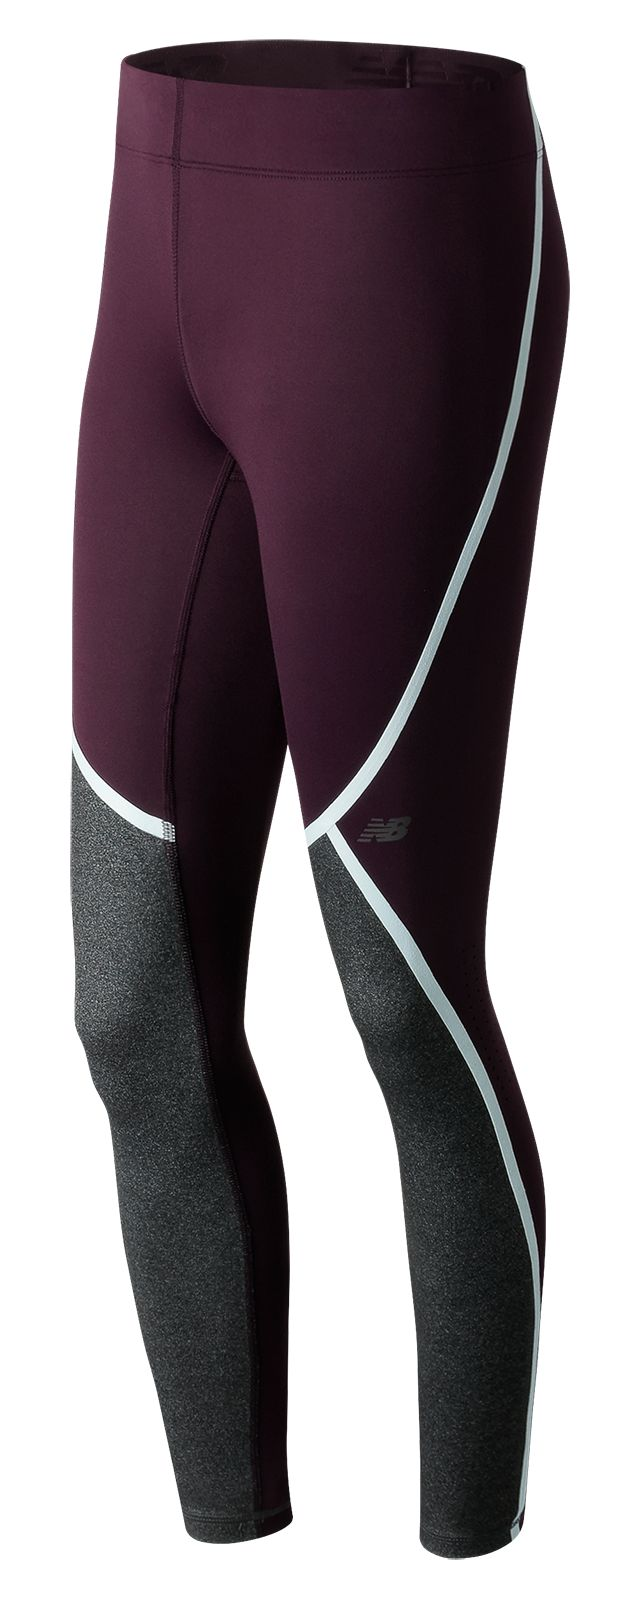 Women's Trinamic Tight